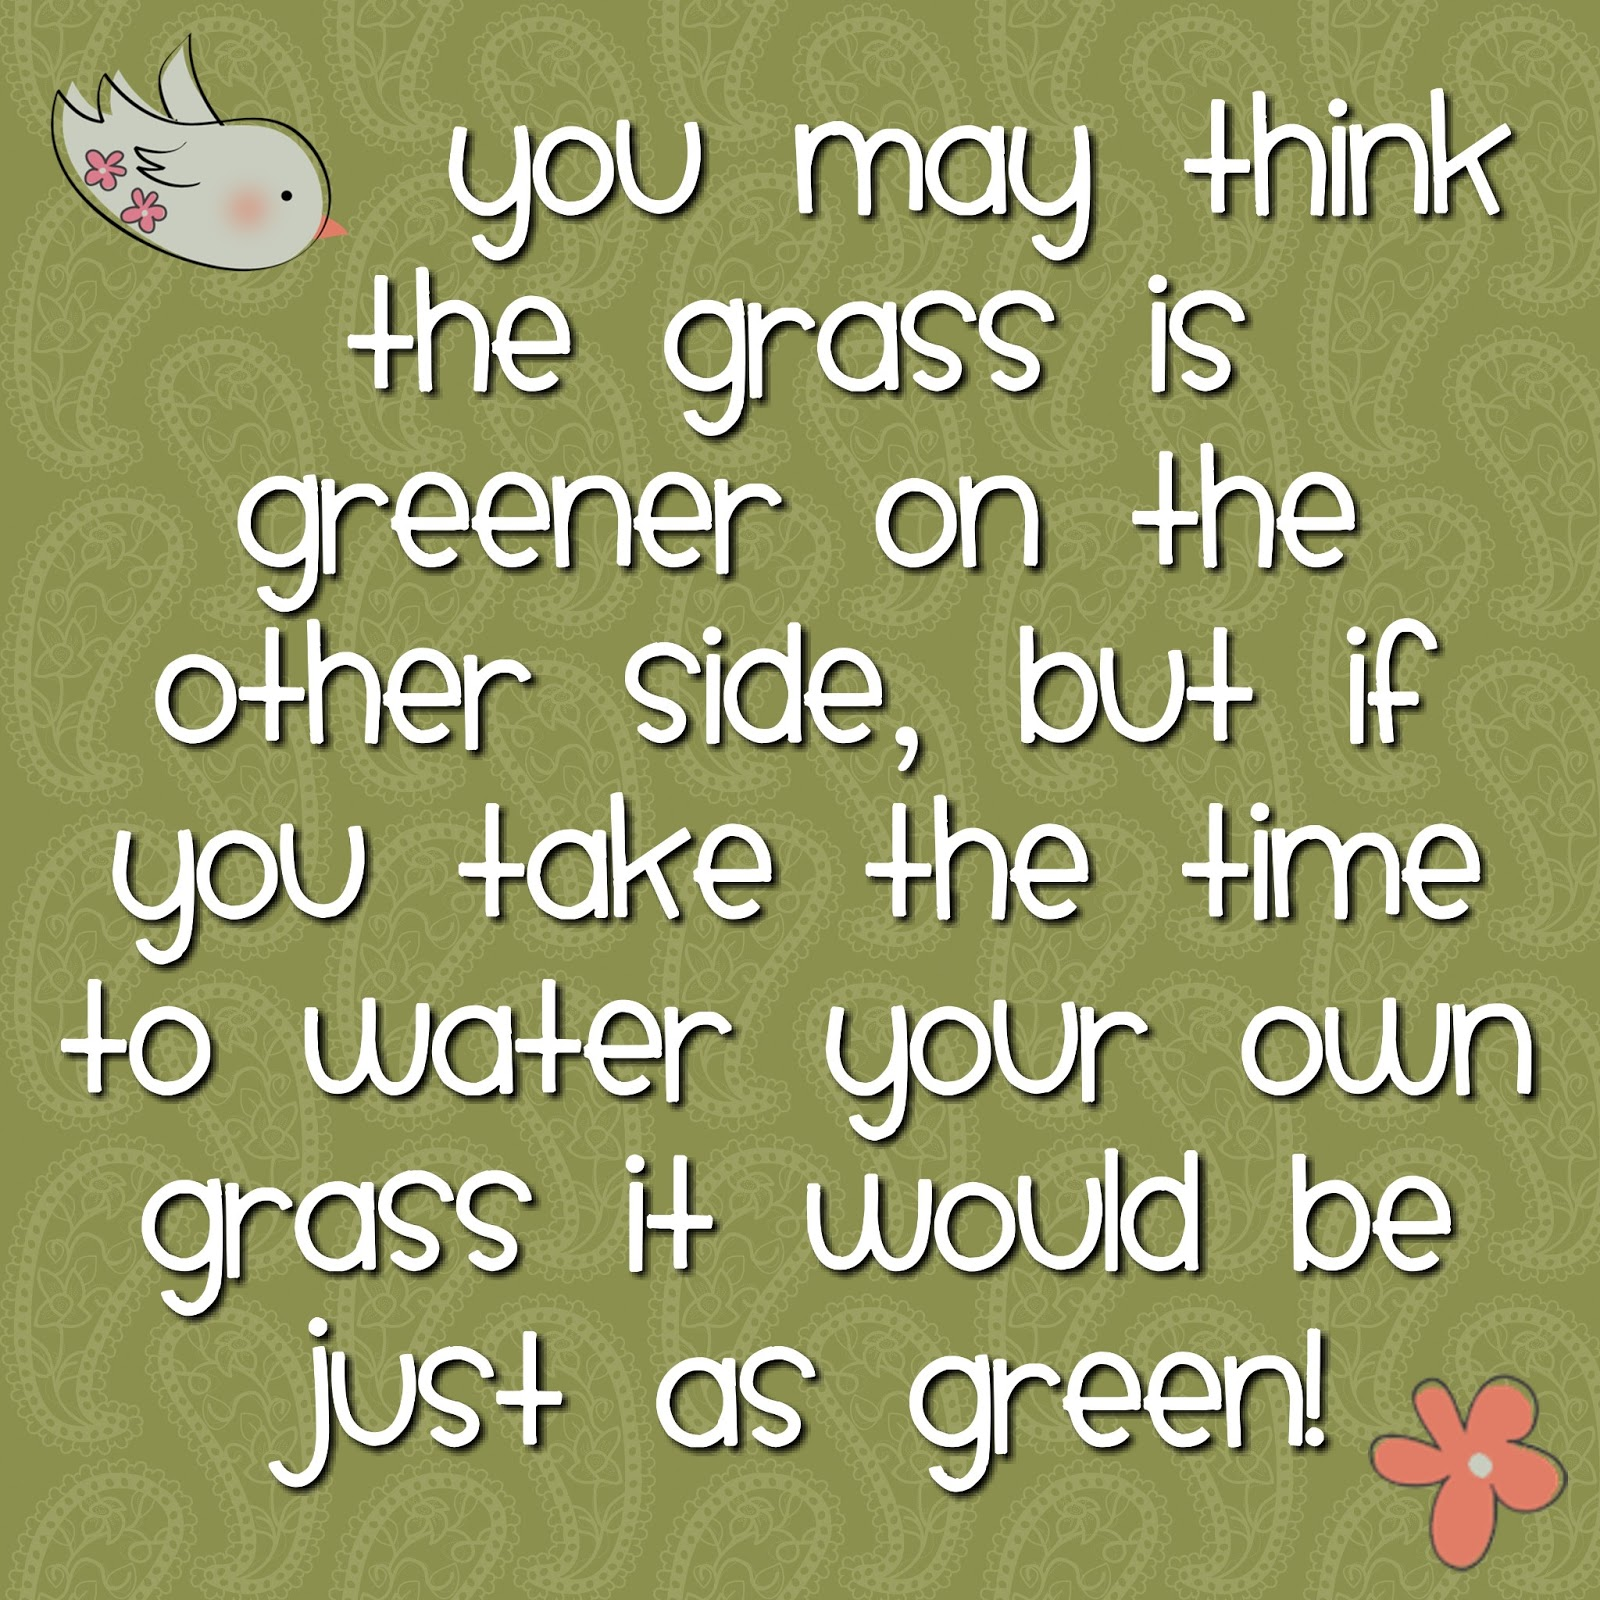 Quotes About Grass 536 Quotes